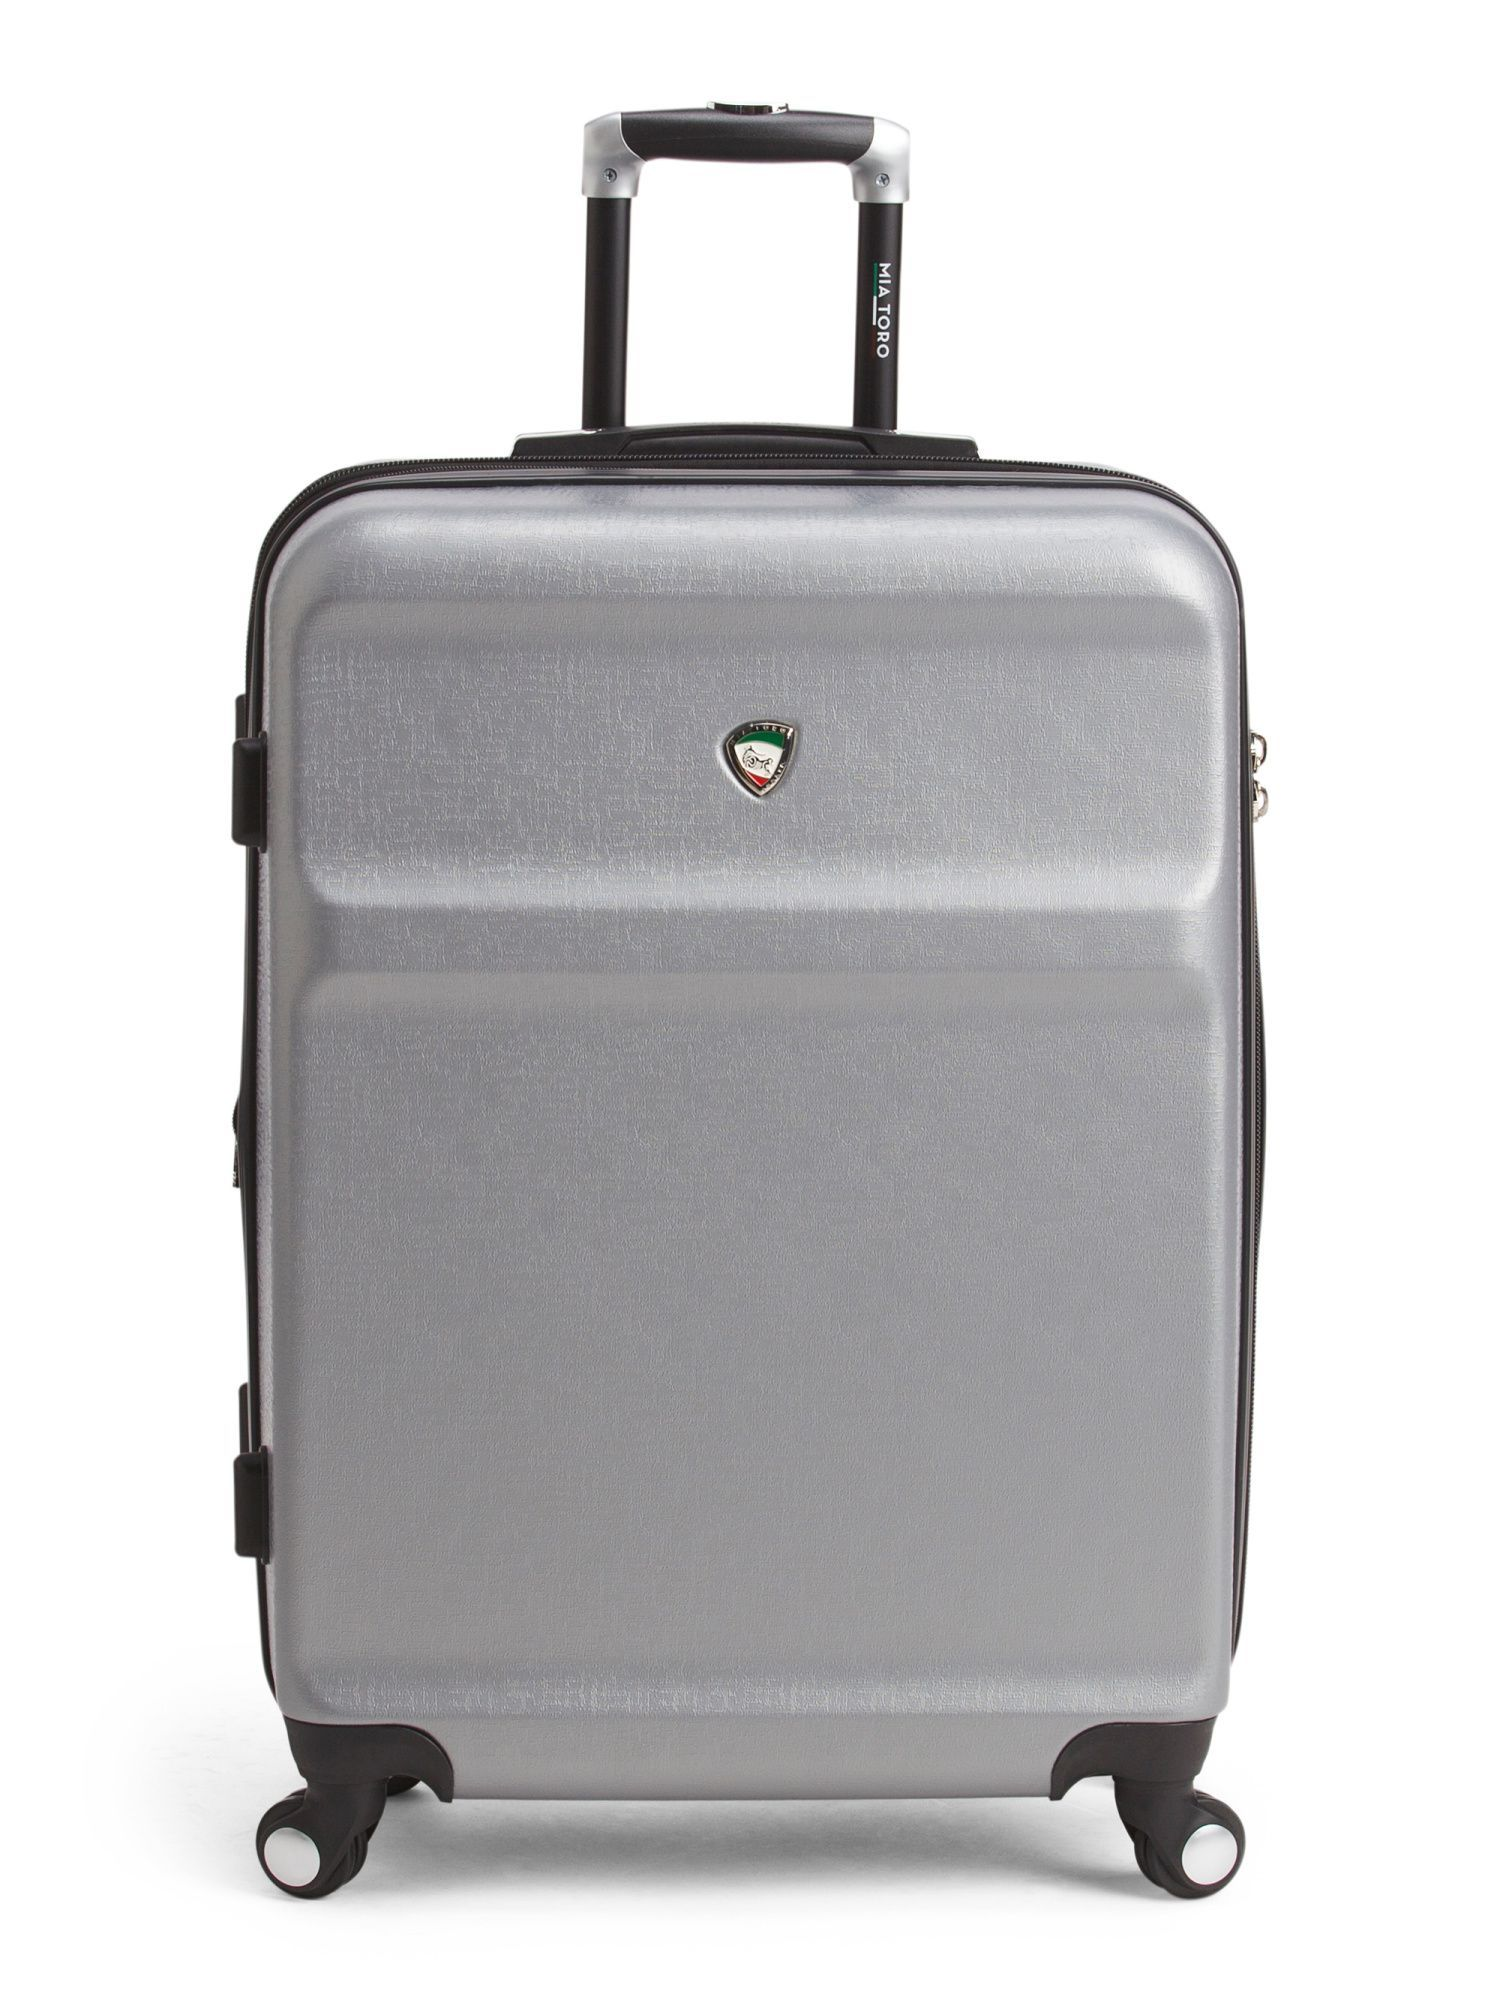 513dc832b 24in Gronchio Spinner Suitcase. 24in Gronchio Spinner Suitcase Hardside ...